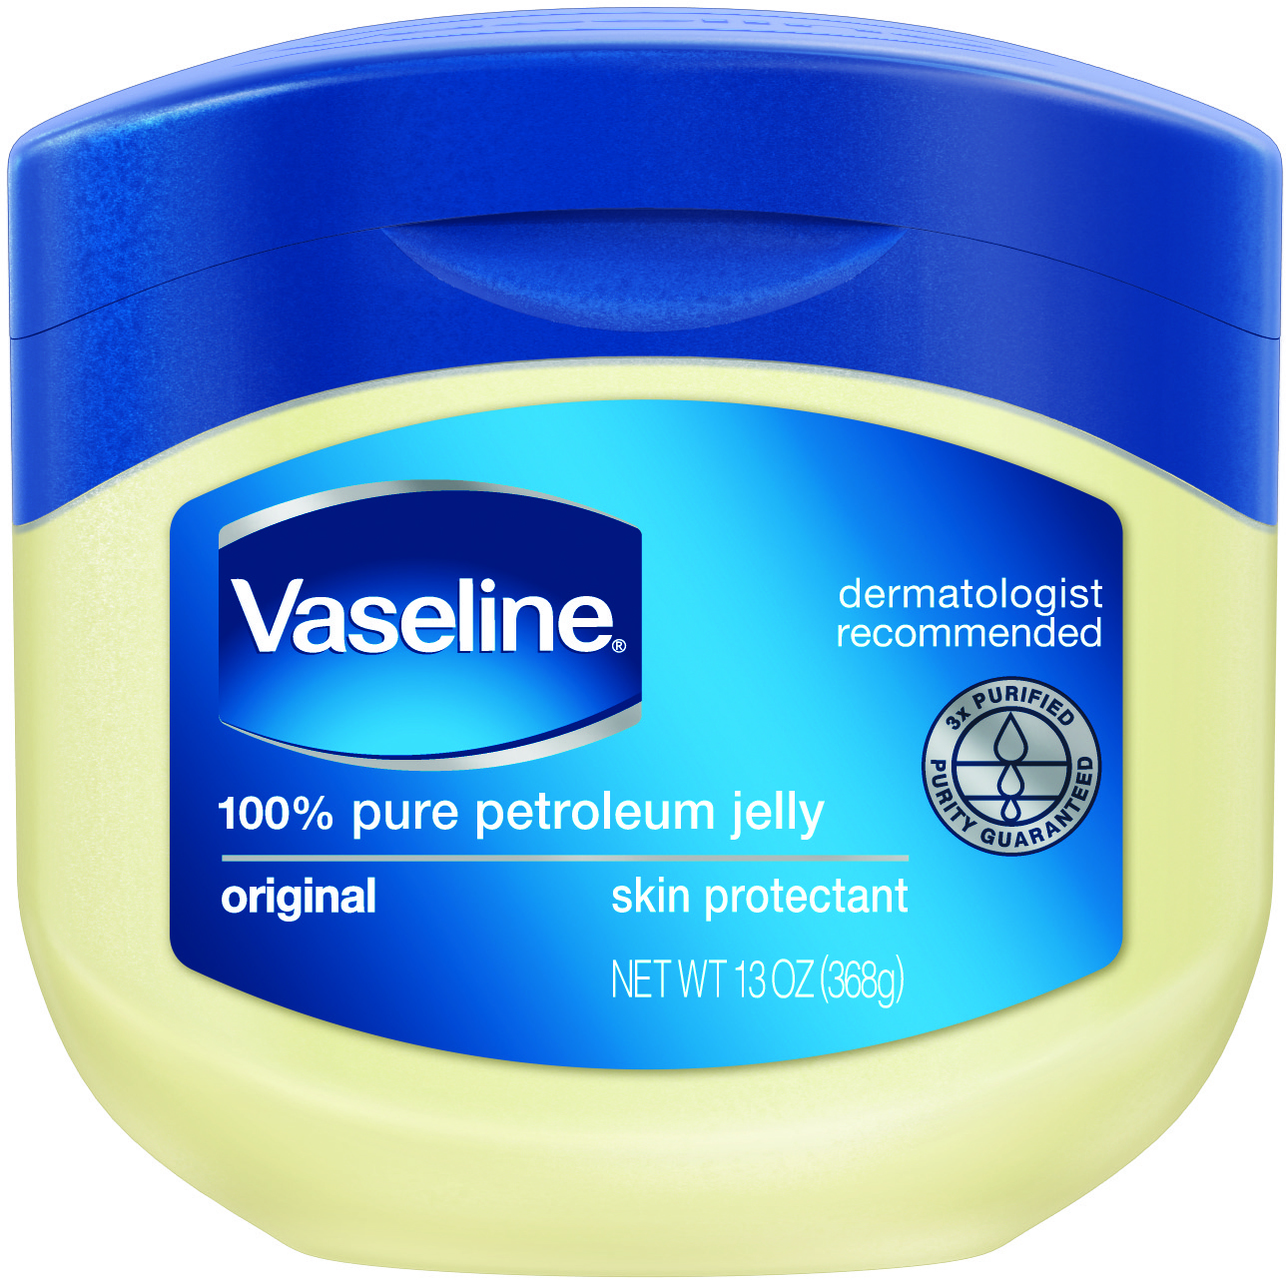 Vaseline Original Skin Protectant Petroleum Jelly, 13 oz